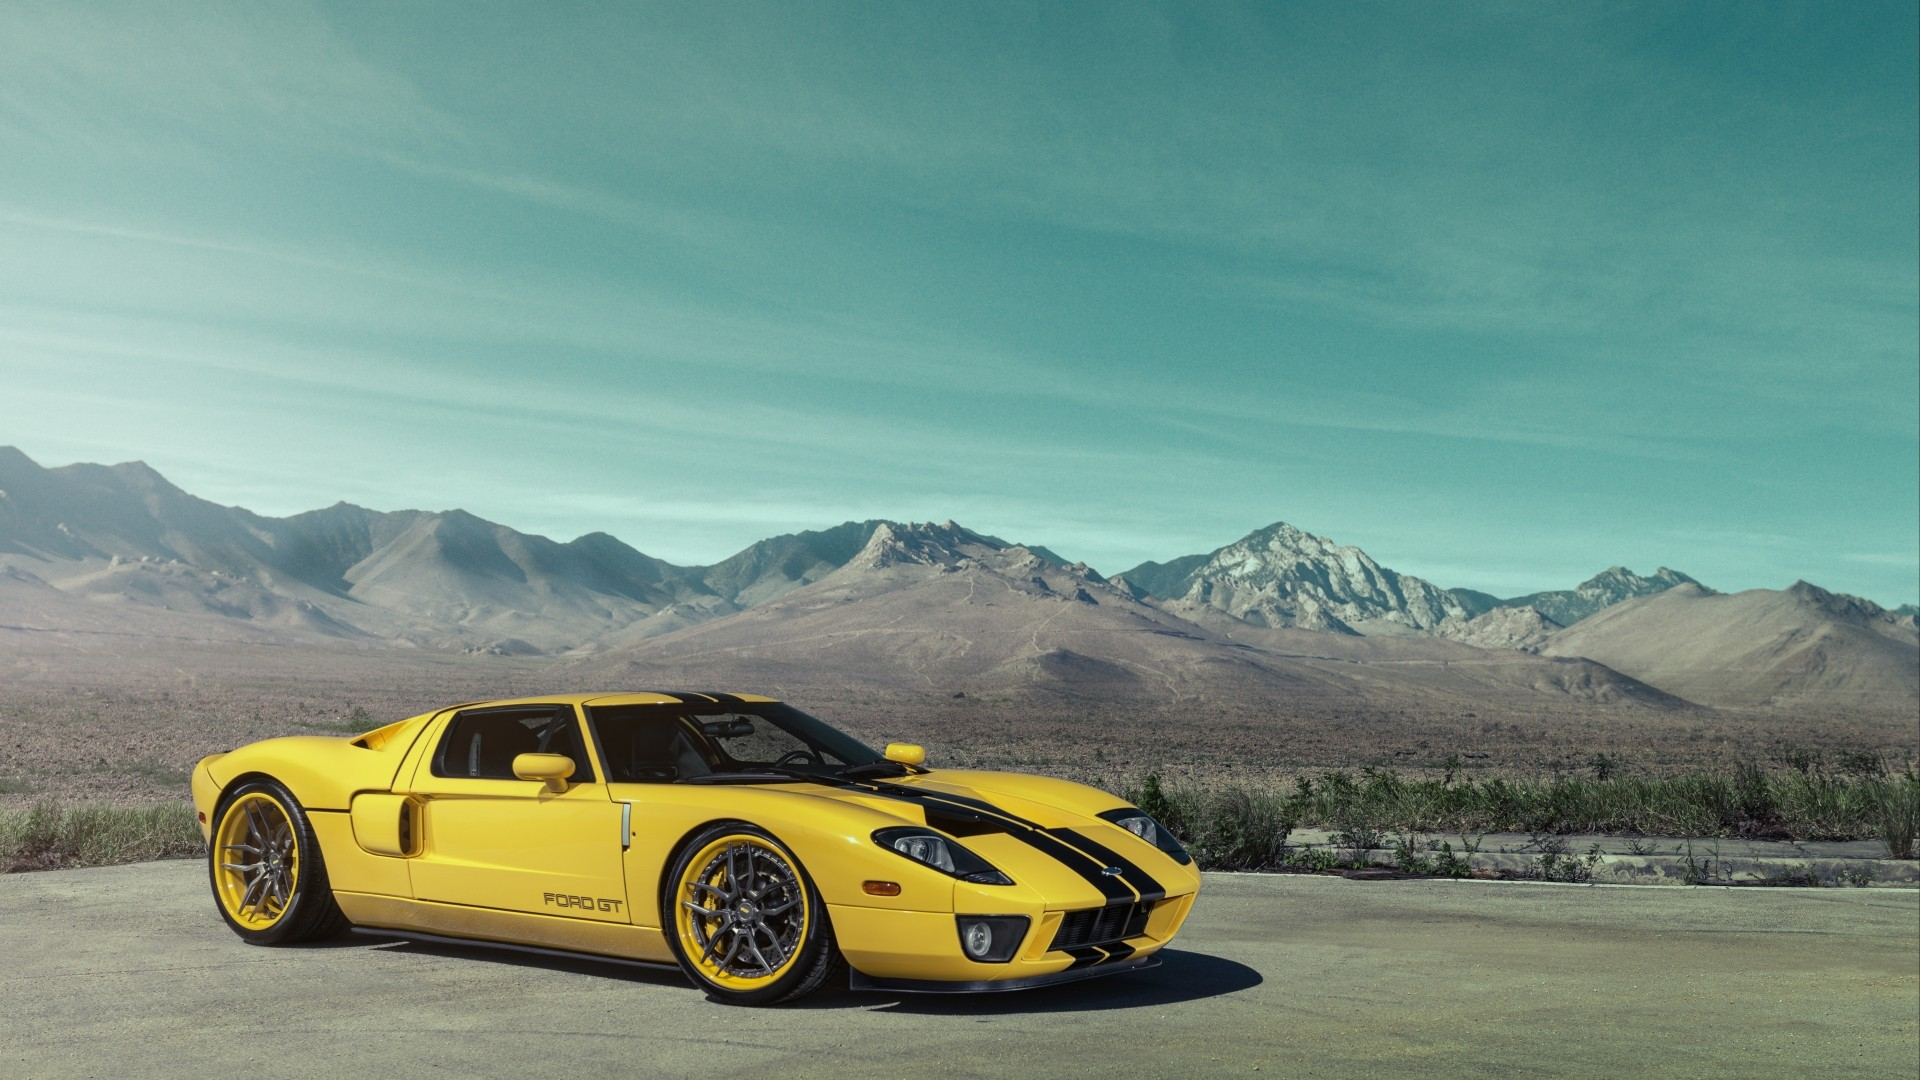 Ford Gt Ford Gt 2005 Car Wallpapers Hd Desktop And Mobile Backgrounds